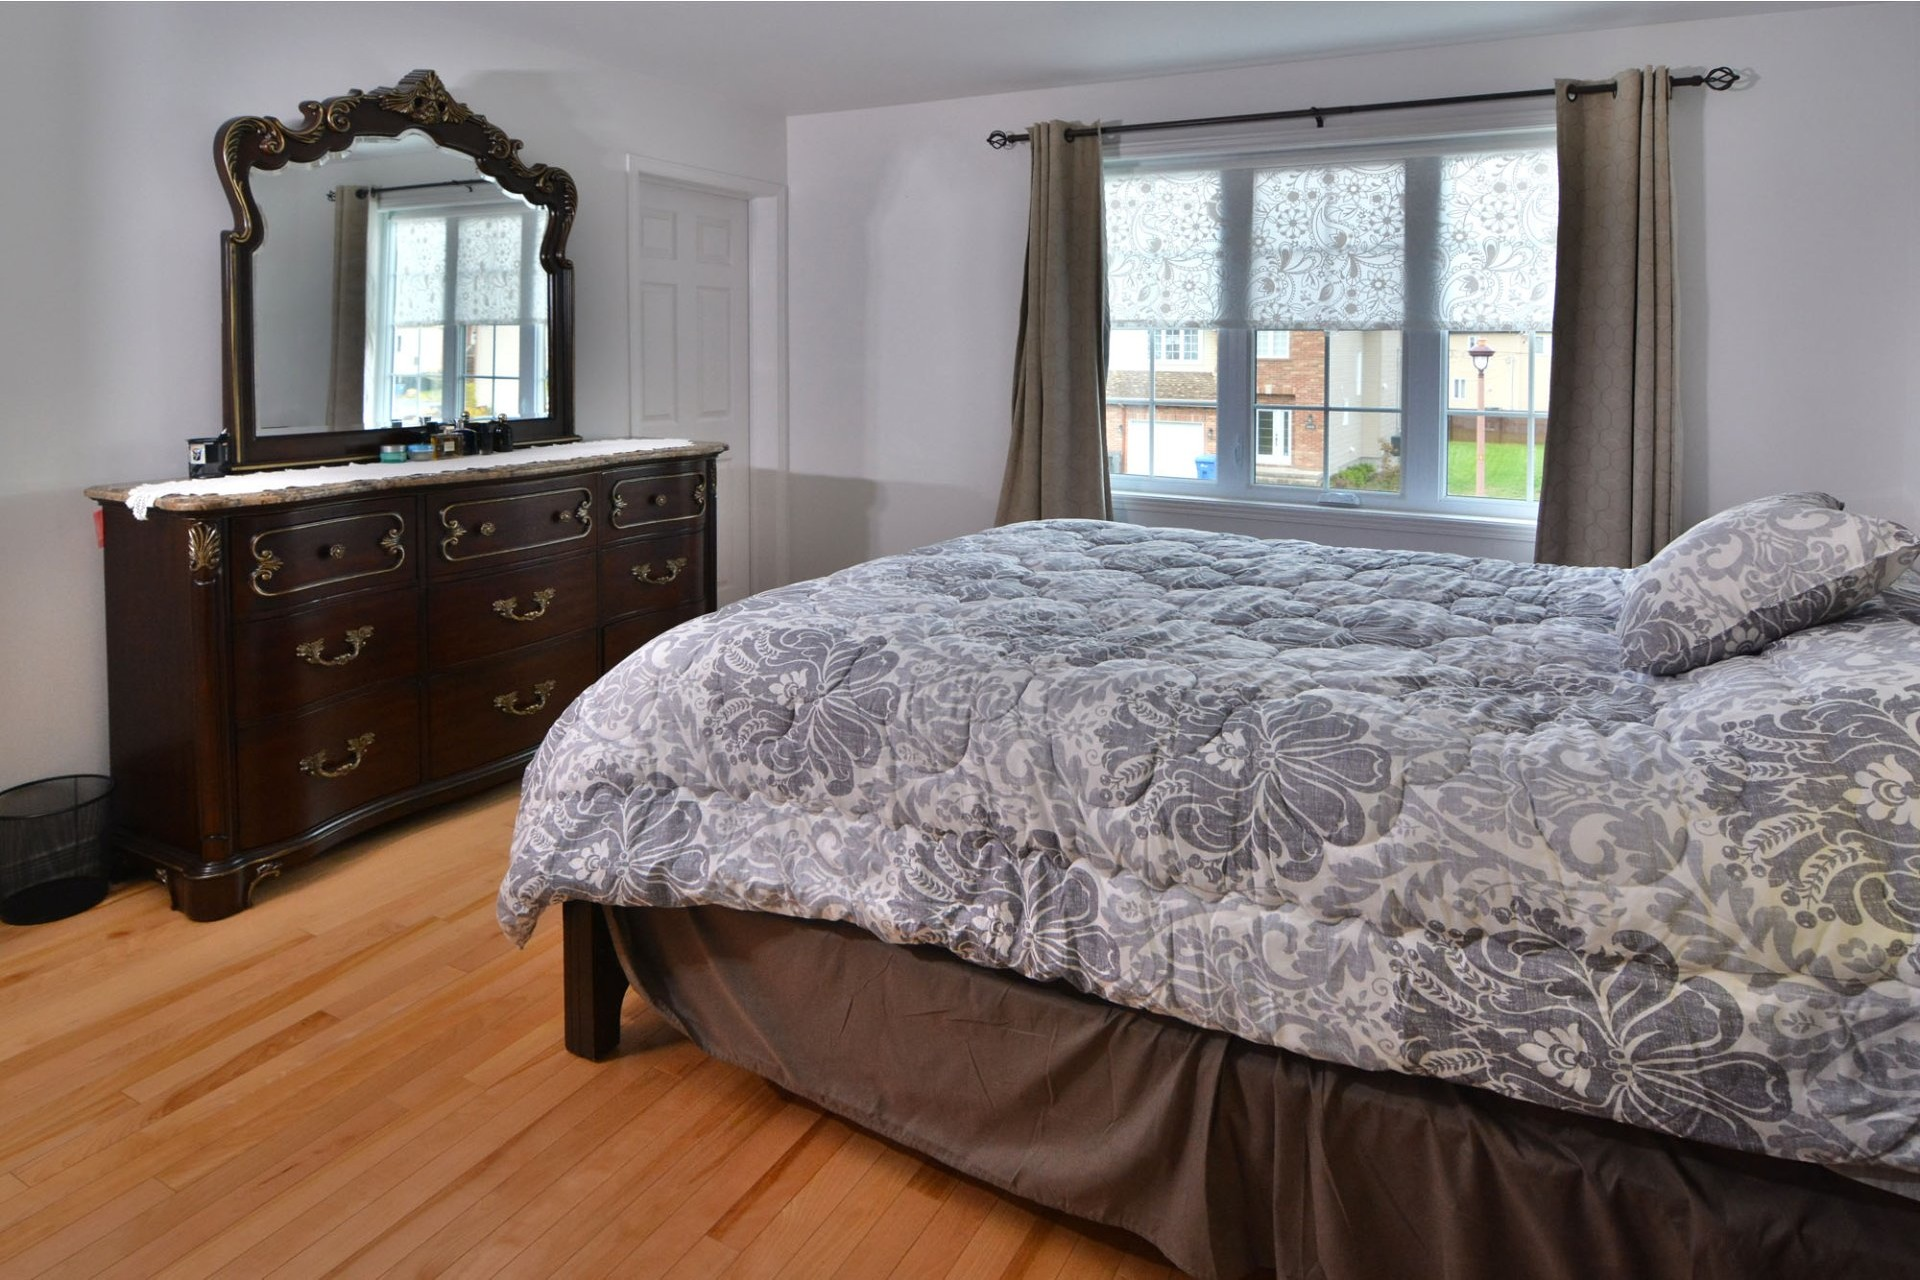 image 13 - House For sale Vaudreuil-Dorion - 12 rooms